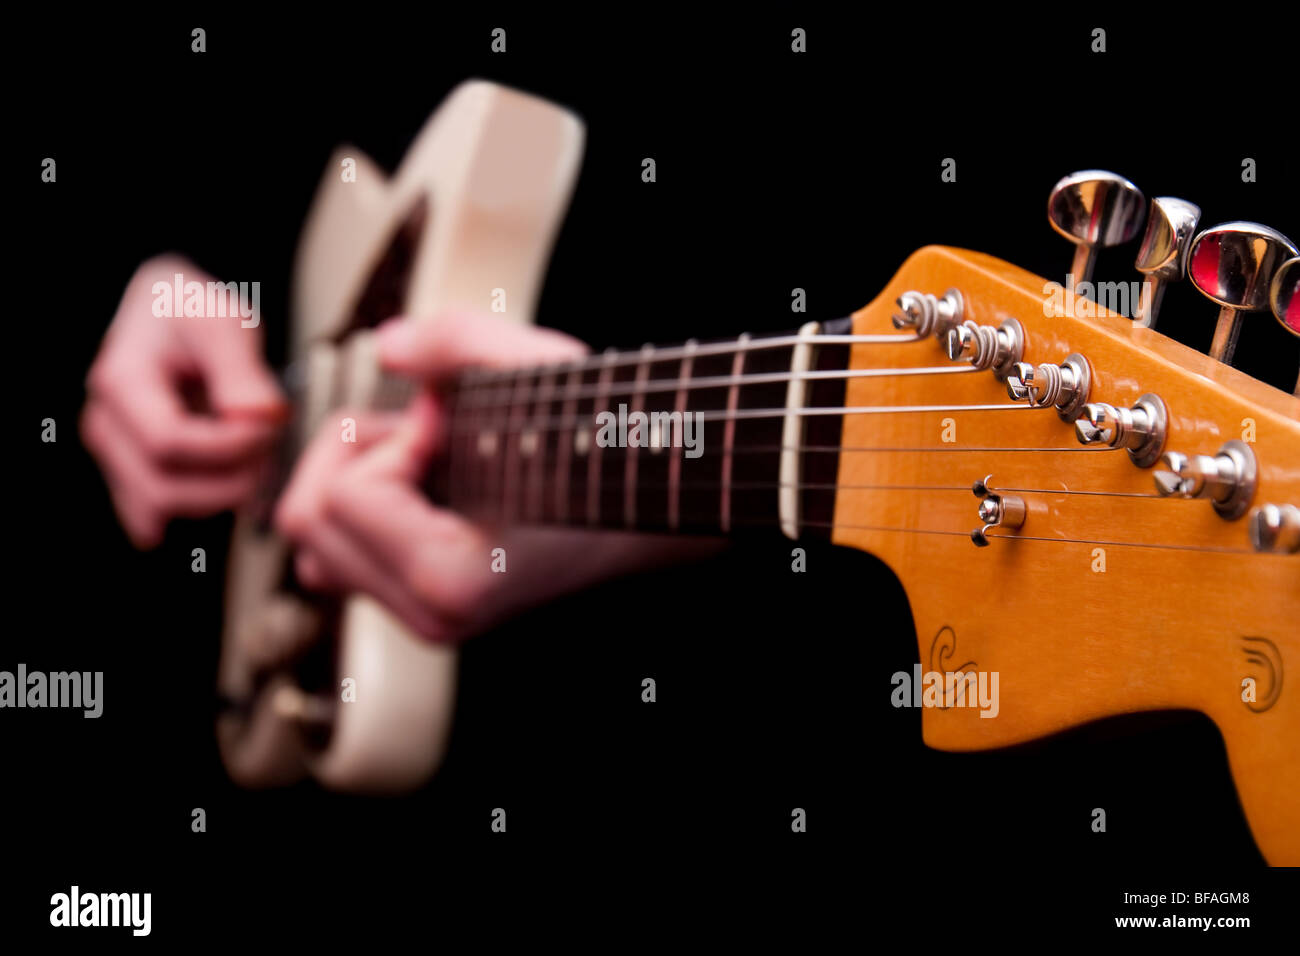 Acoustic electric jazz guitar with blurred hands being played, isolated on black. - Stock Image